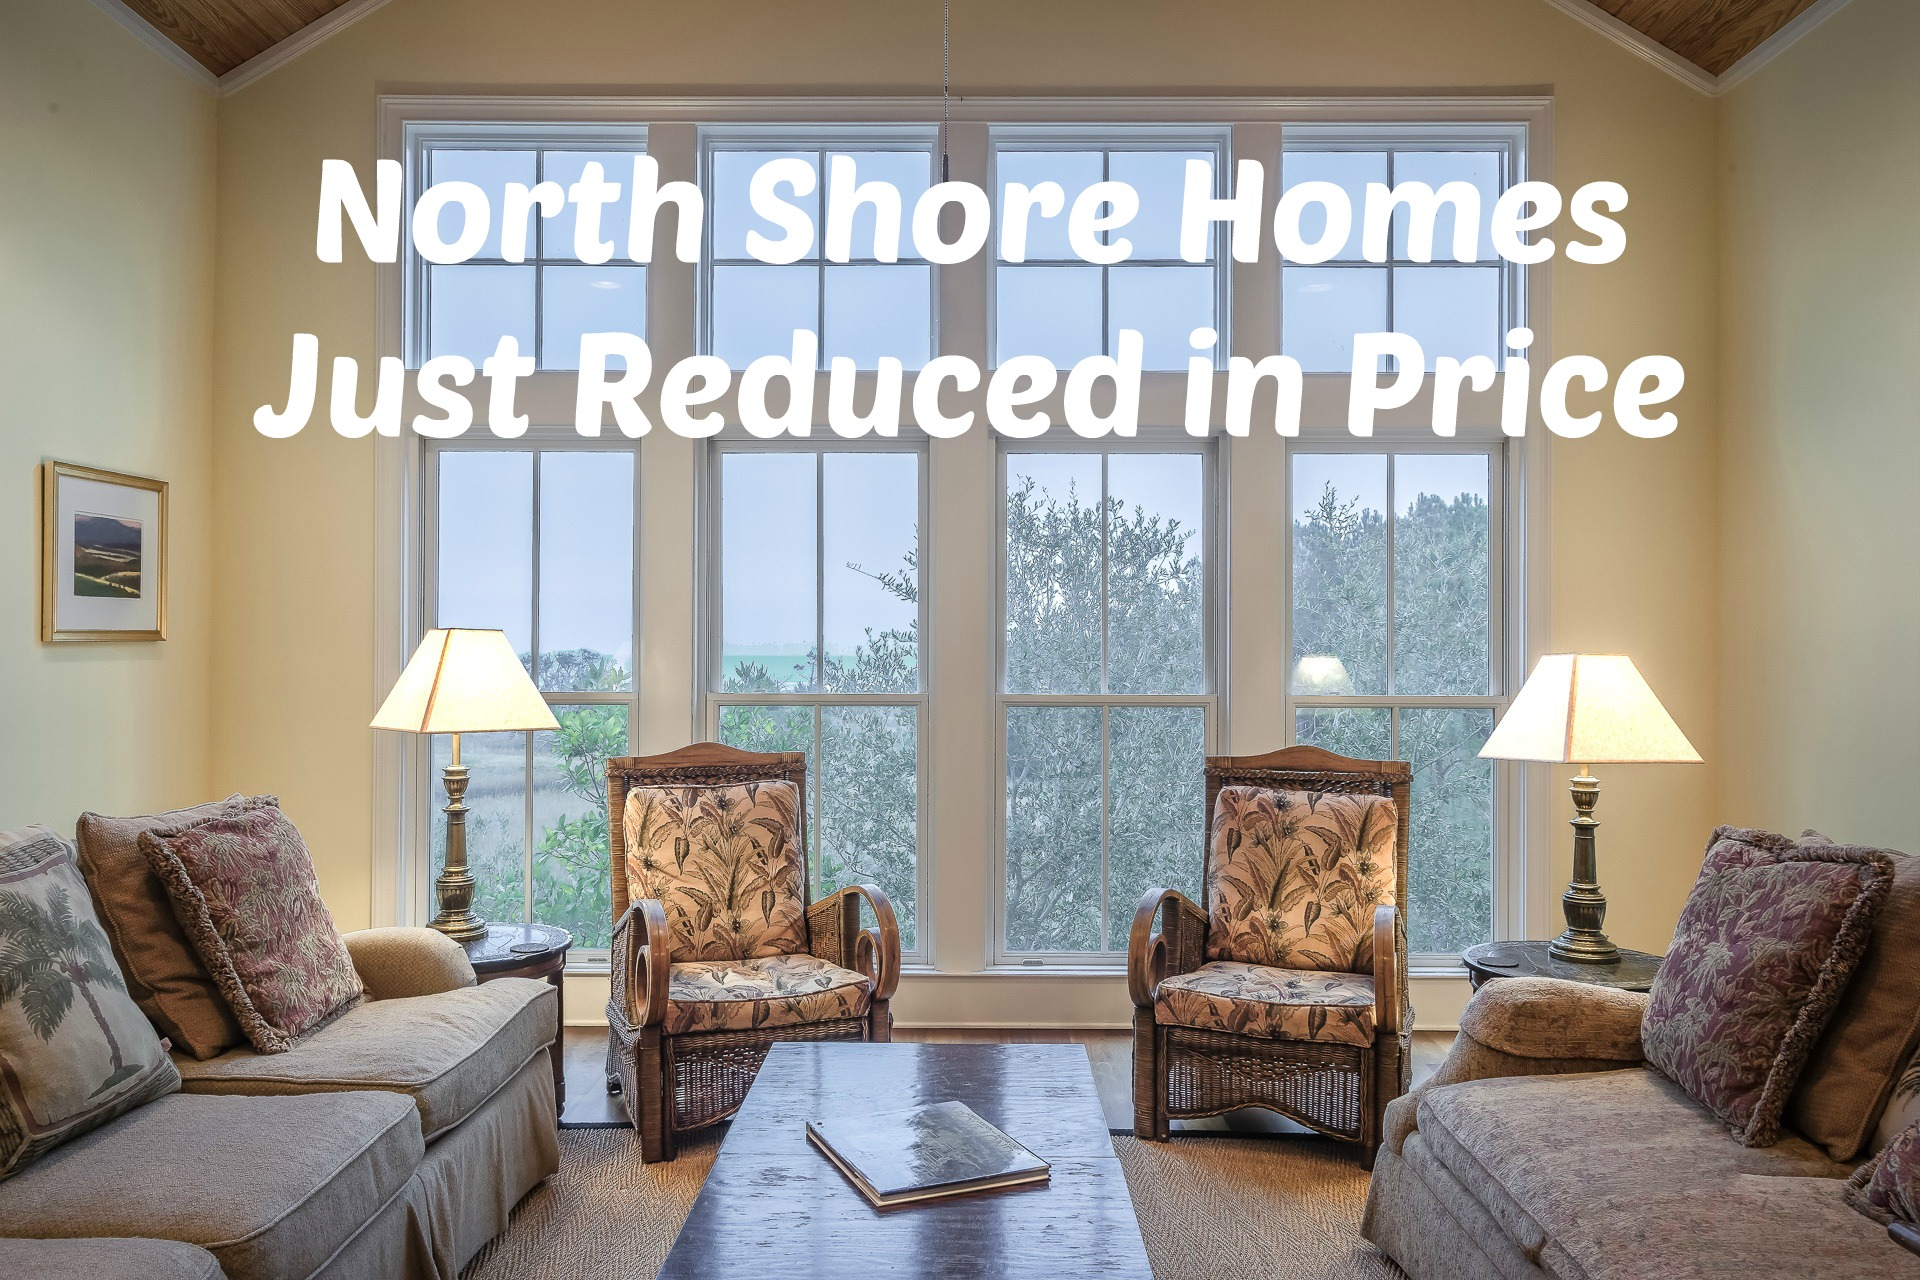 North Shore Homes - Just Reduced in Price